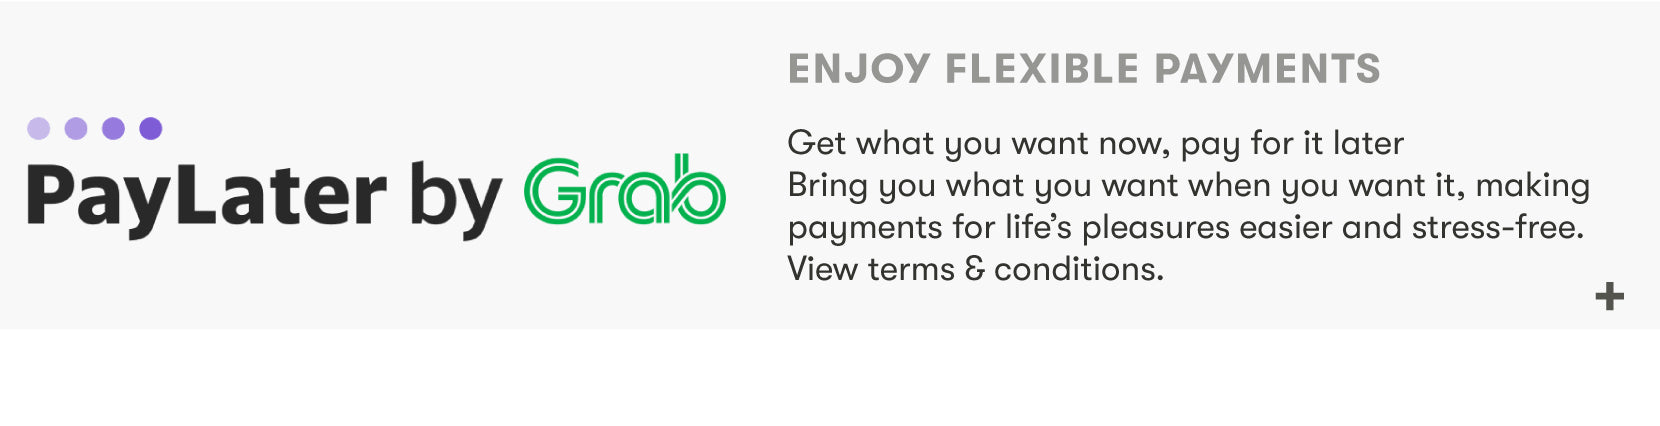 grab-paylater-instalment-plan-with-bedding-affairs